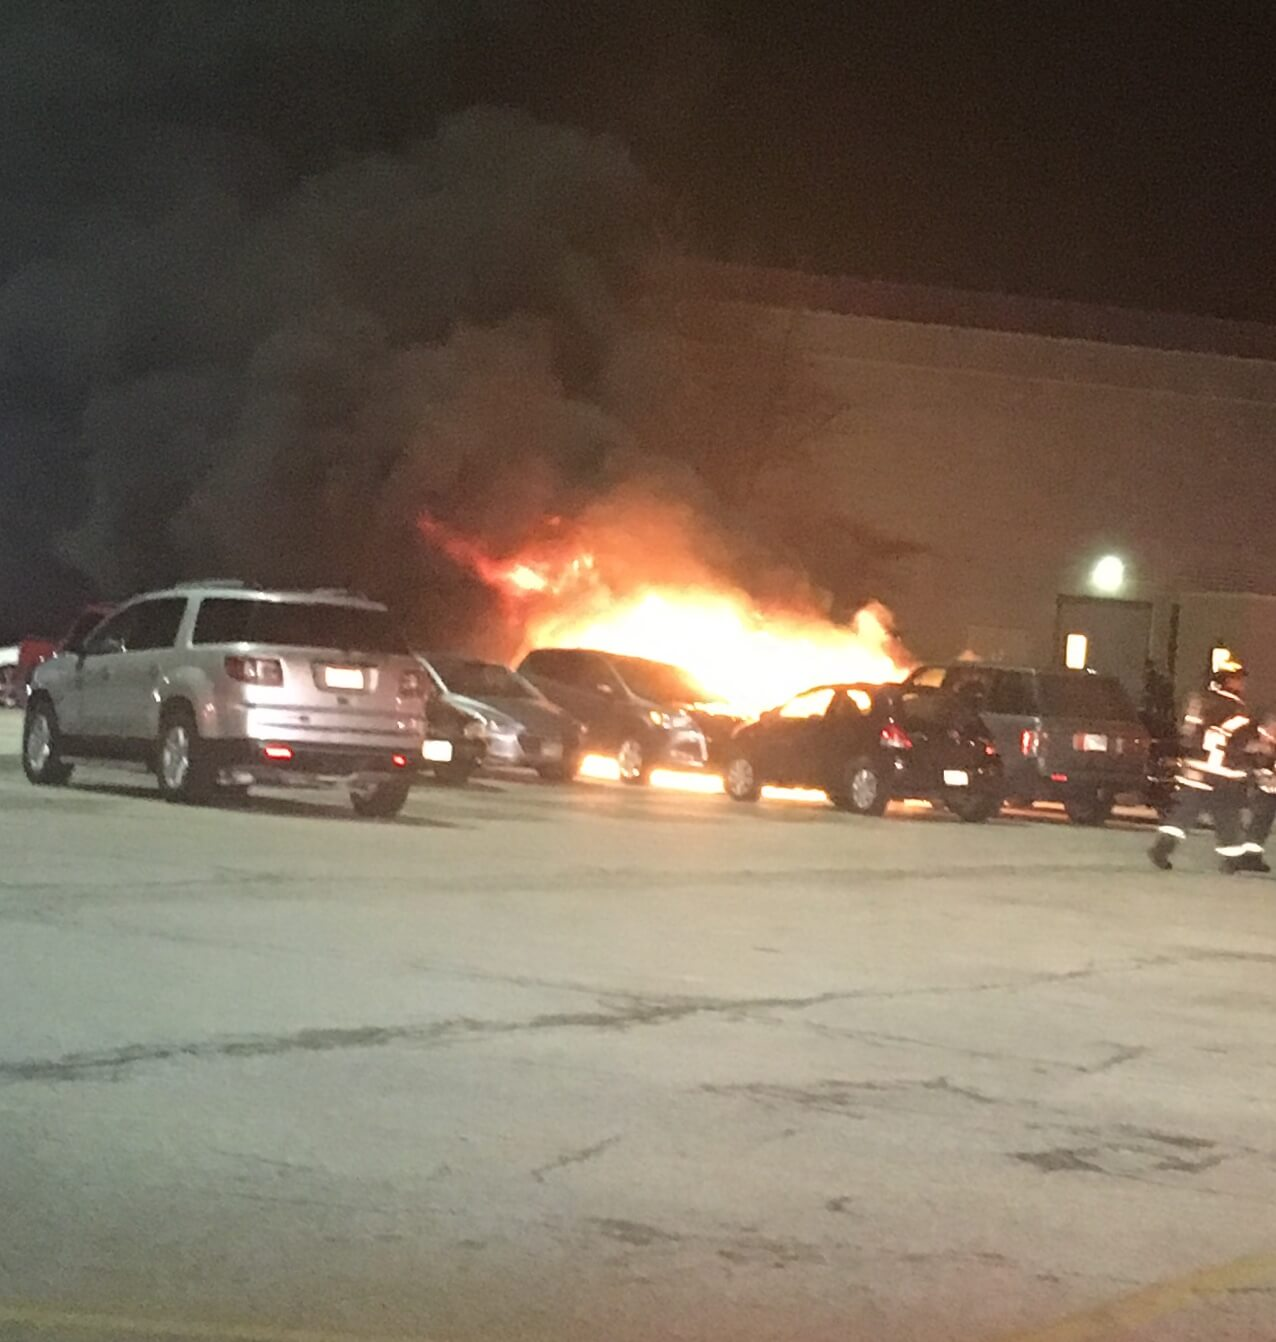 Four cars were damaged by fire in the Orland Park Mall on Thursday night Feb. 21, 2018. No one was injured. Photo courtesy of the Orland Fire Protection District